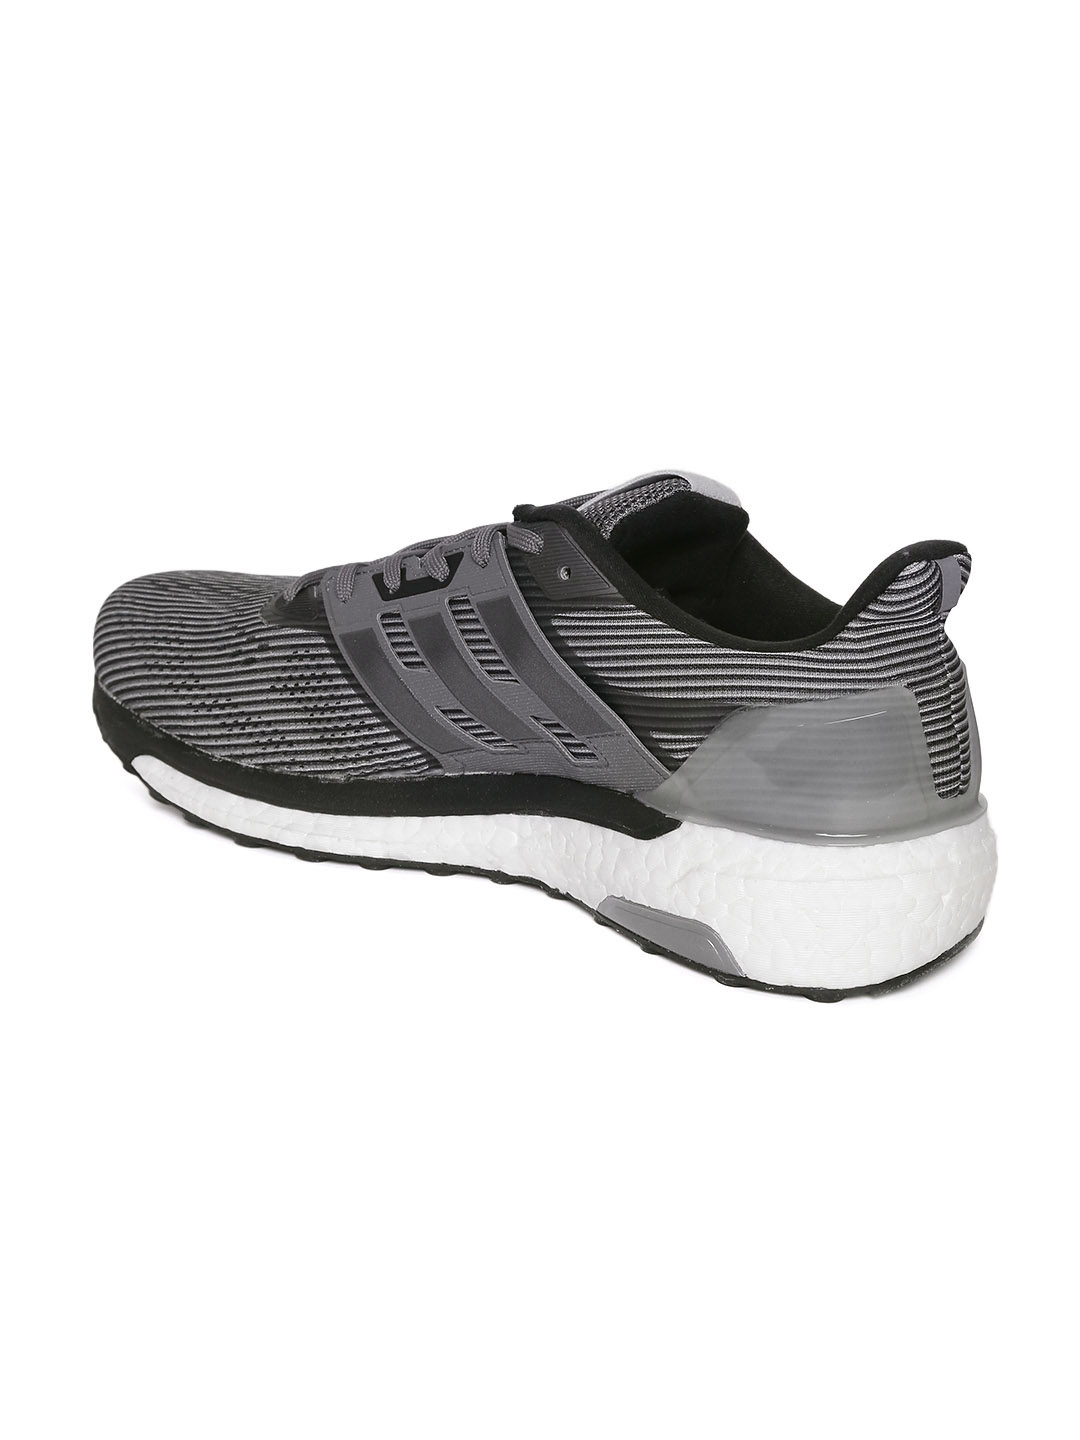 930730fc0 Buy ADIDAS Men Grey Supernova Running Shoes - Sports Shoes for Men ...